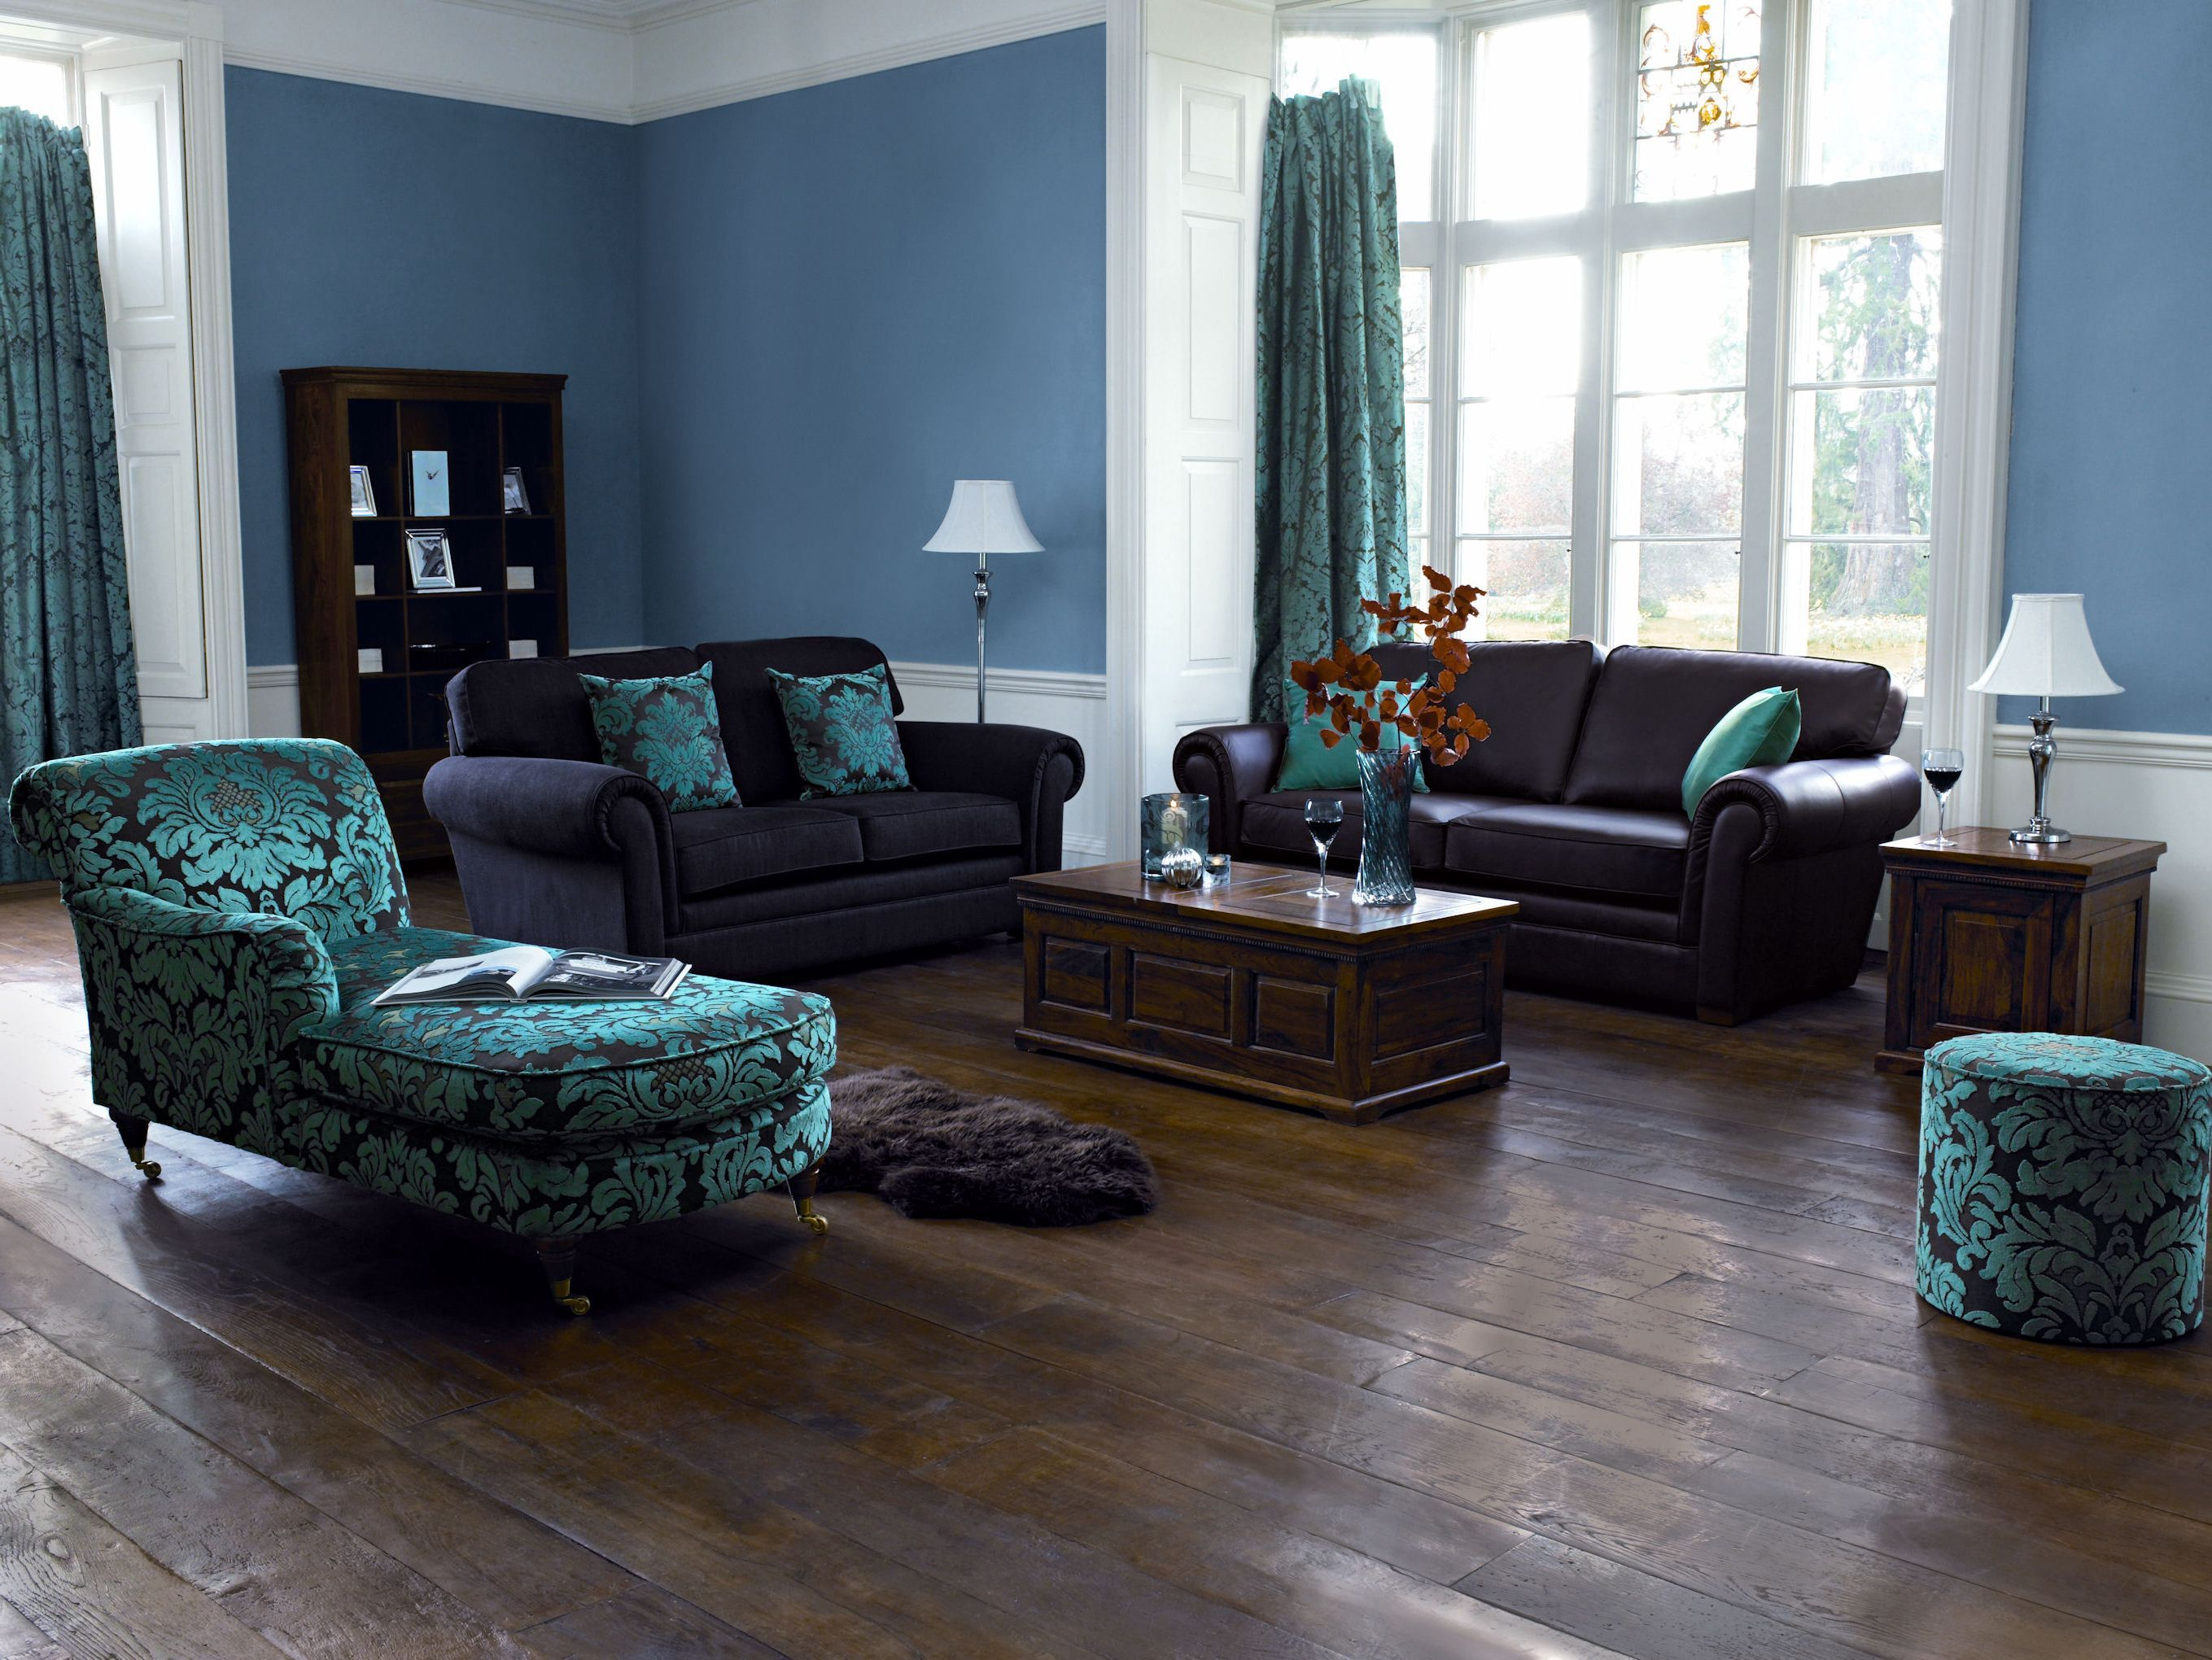 Living room blue living room ideas for calm and relaxing welcoming space dark blue